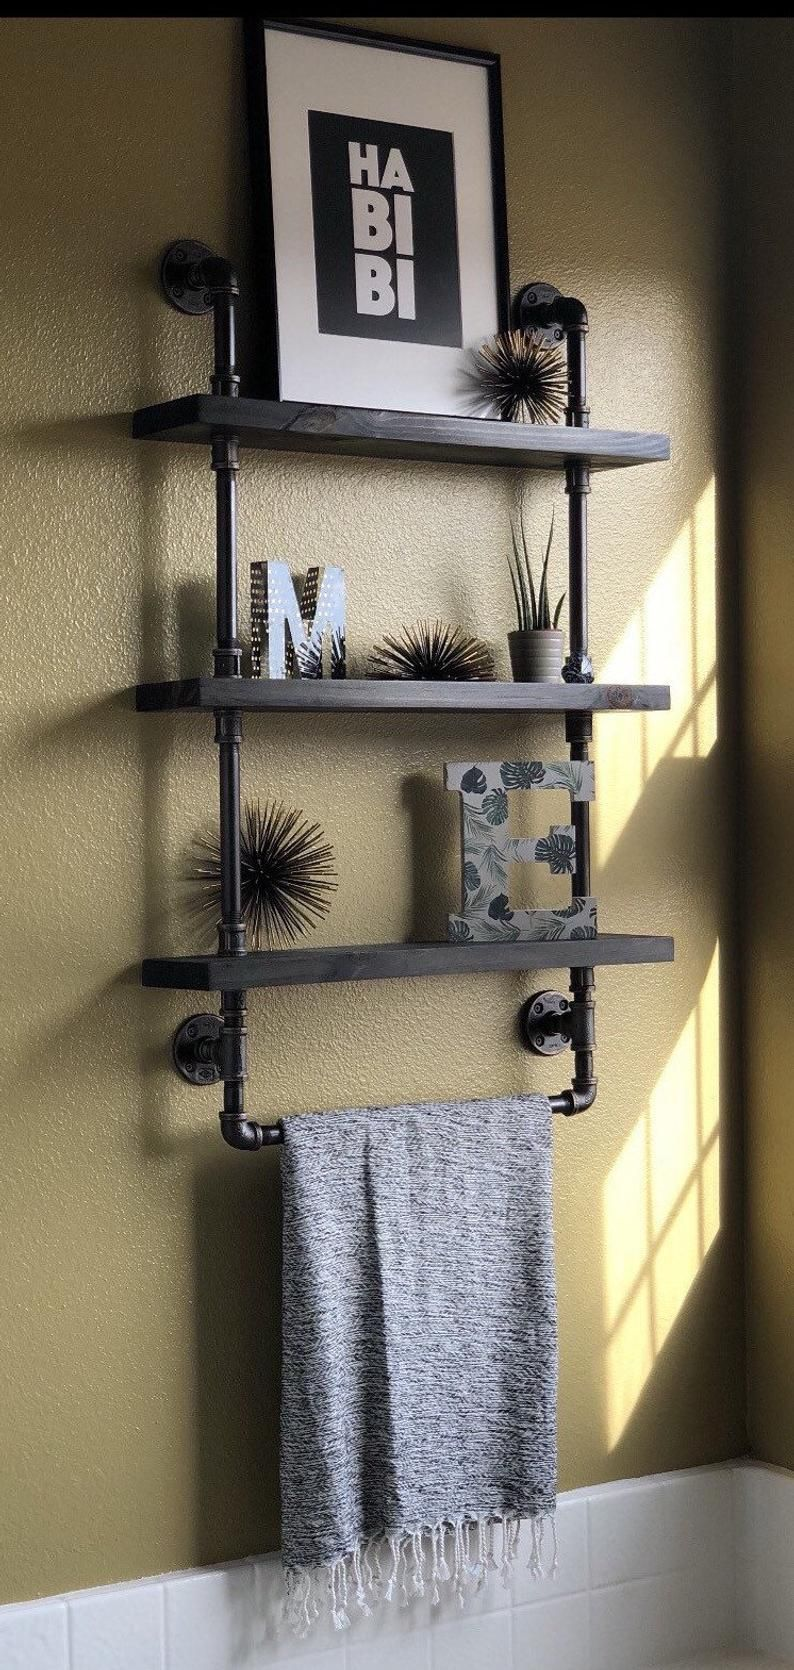 Pin On House Industrial pipe bathroom decor